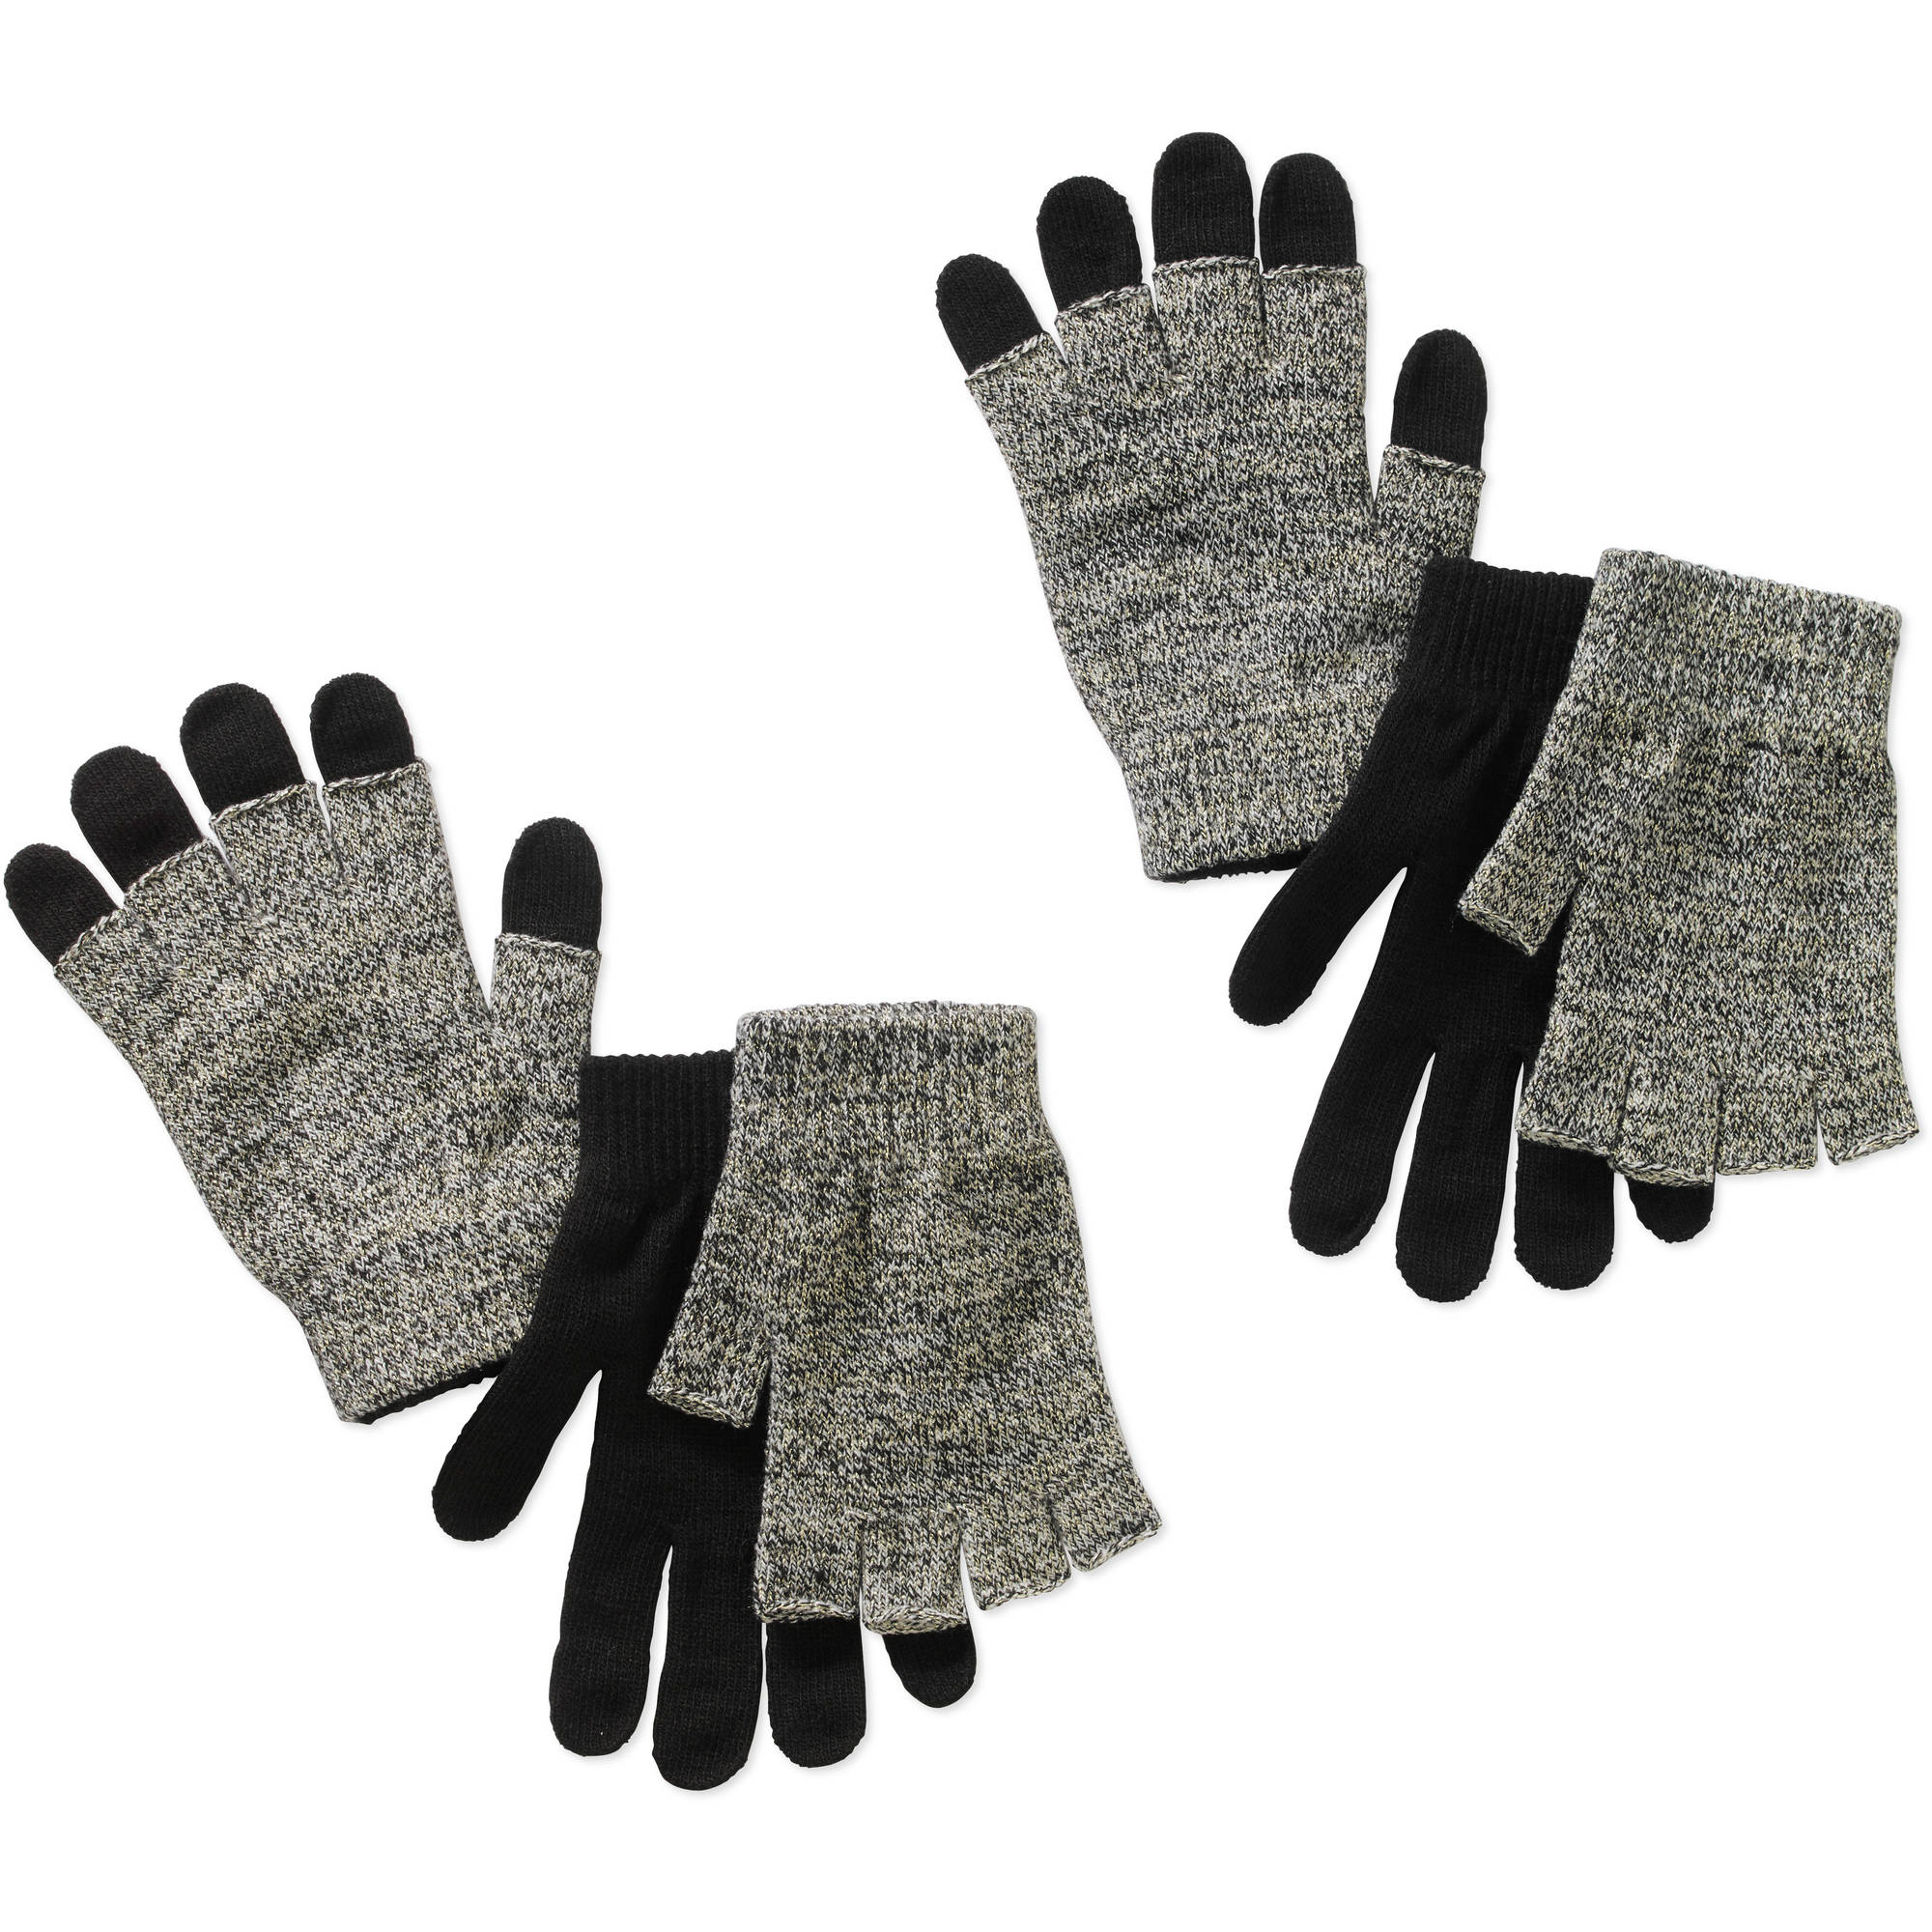 3 in 1 Lurex Gloves, 2-Pack